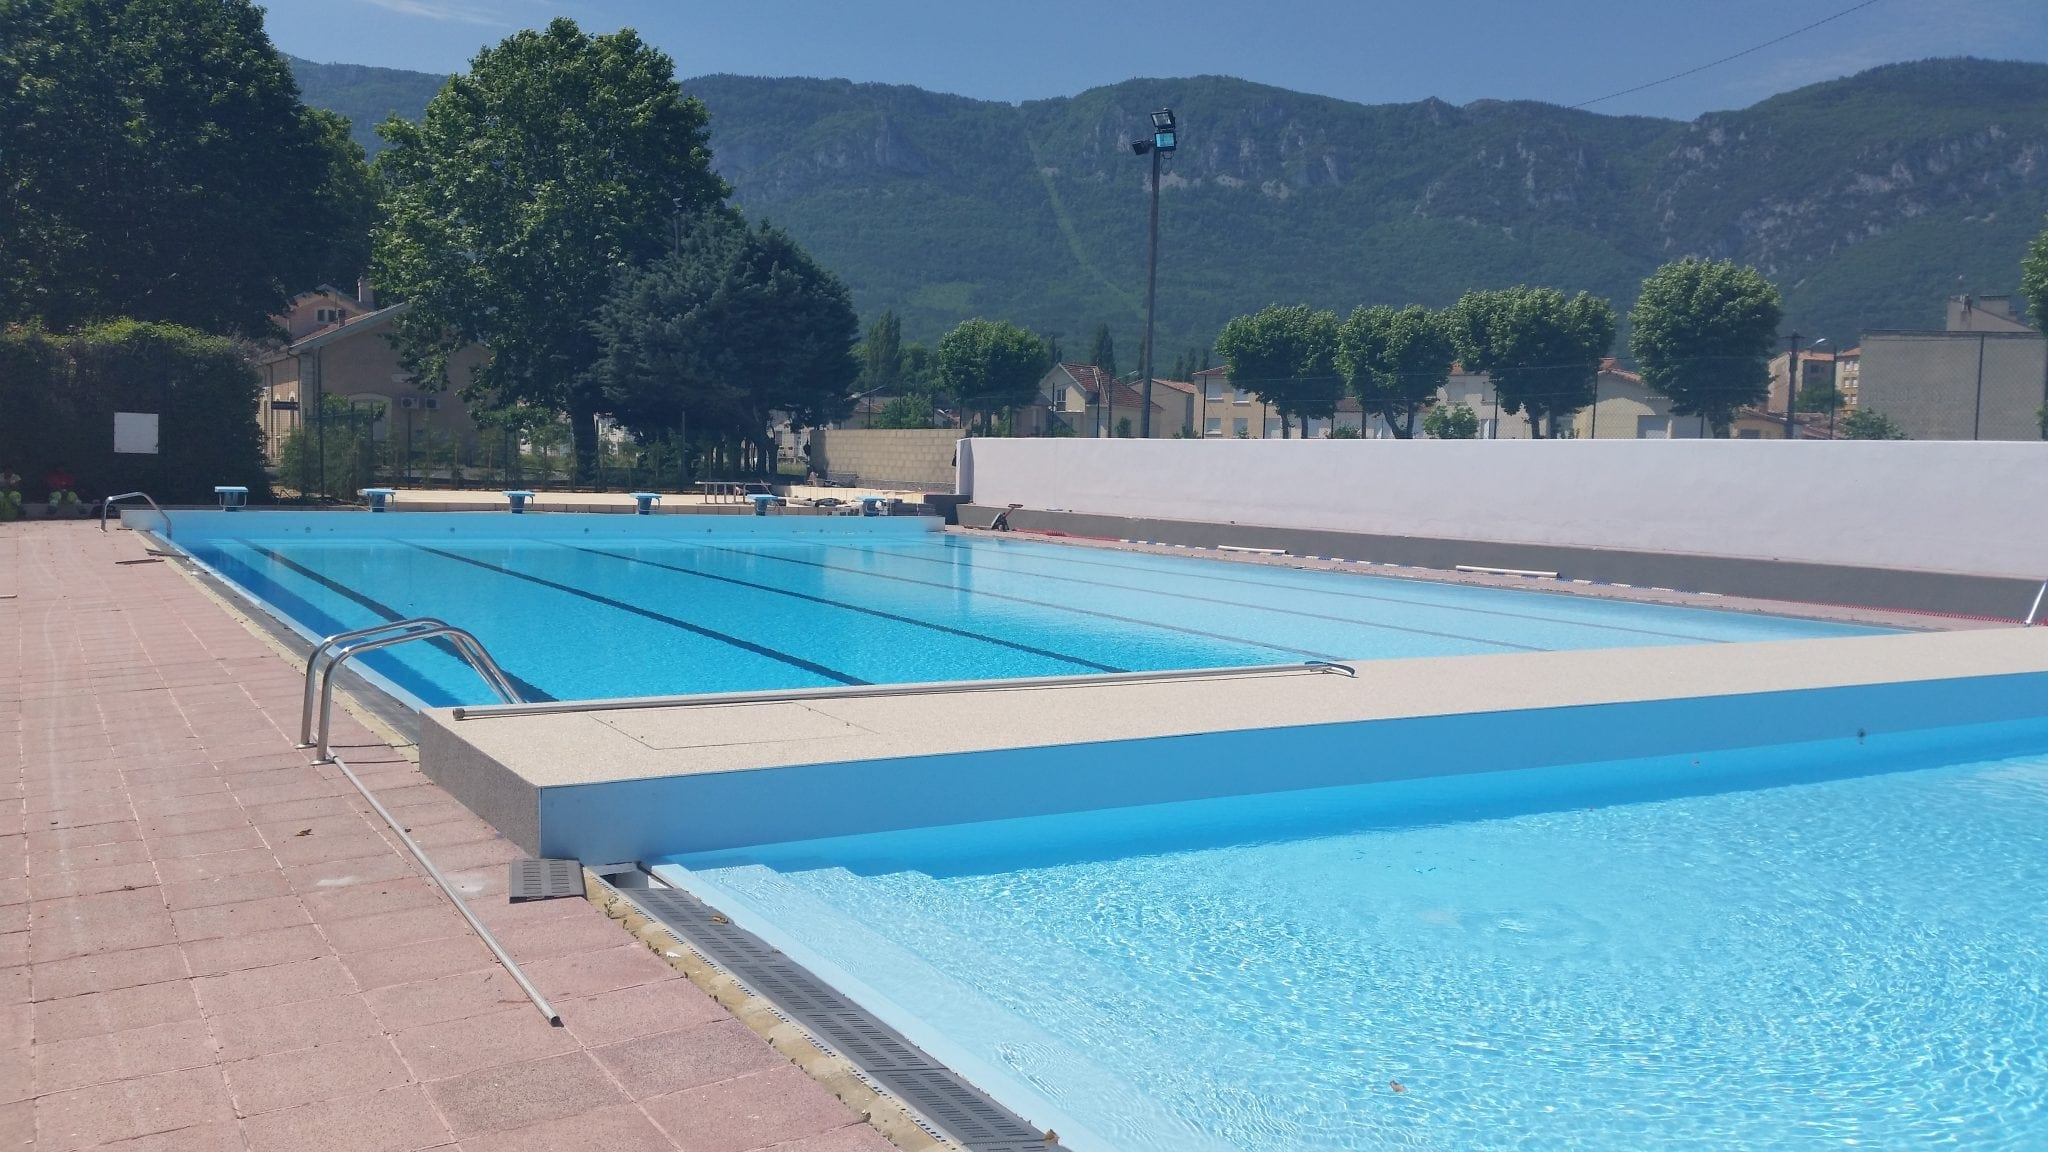 Renovation piscine public narbonne 10 btv piscine for Piscine narbonne